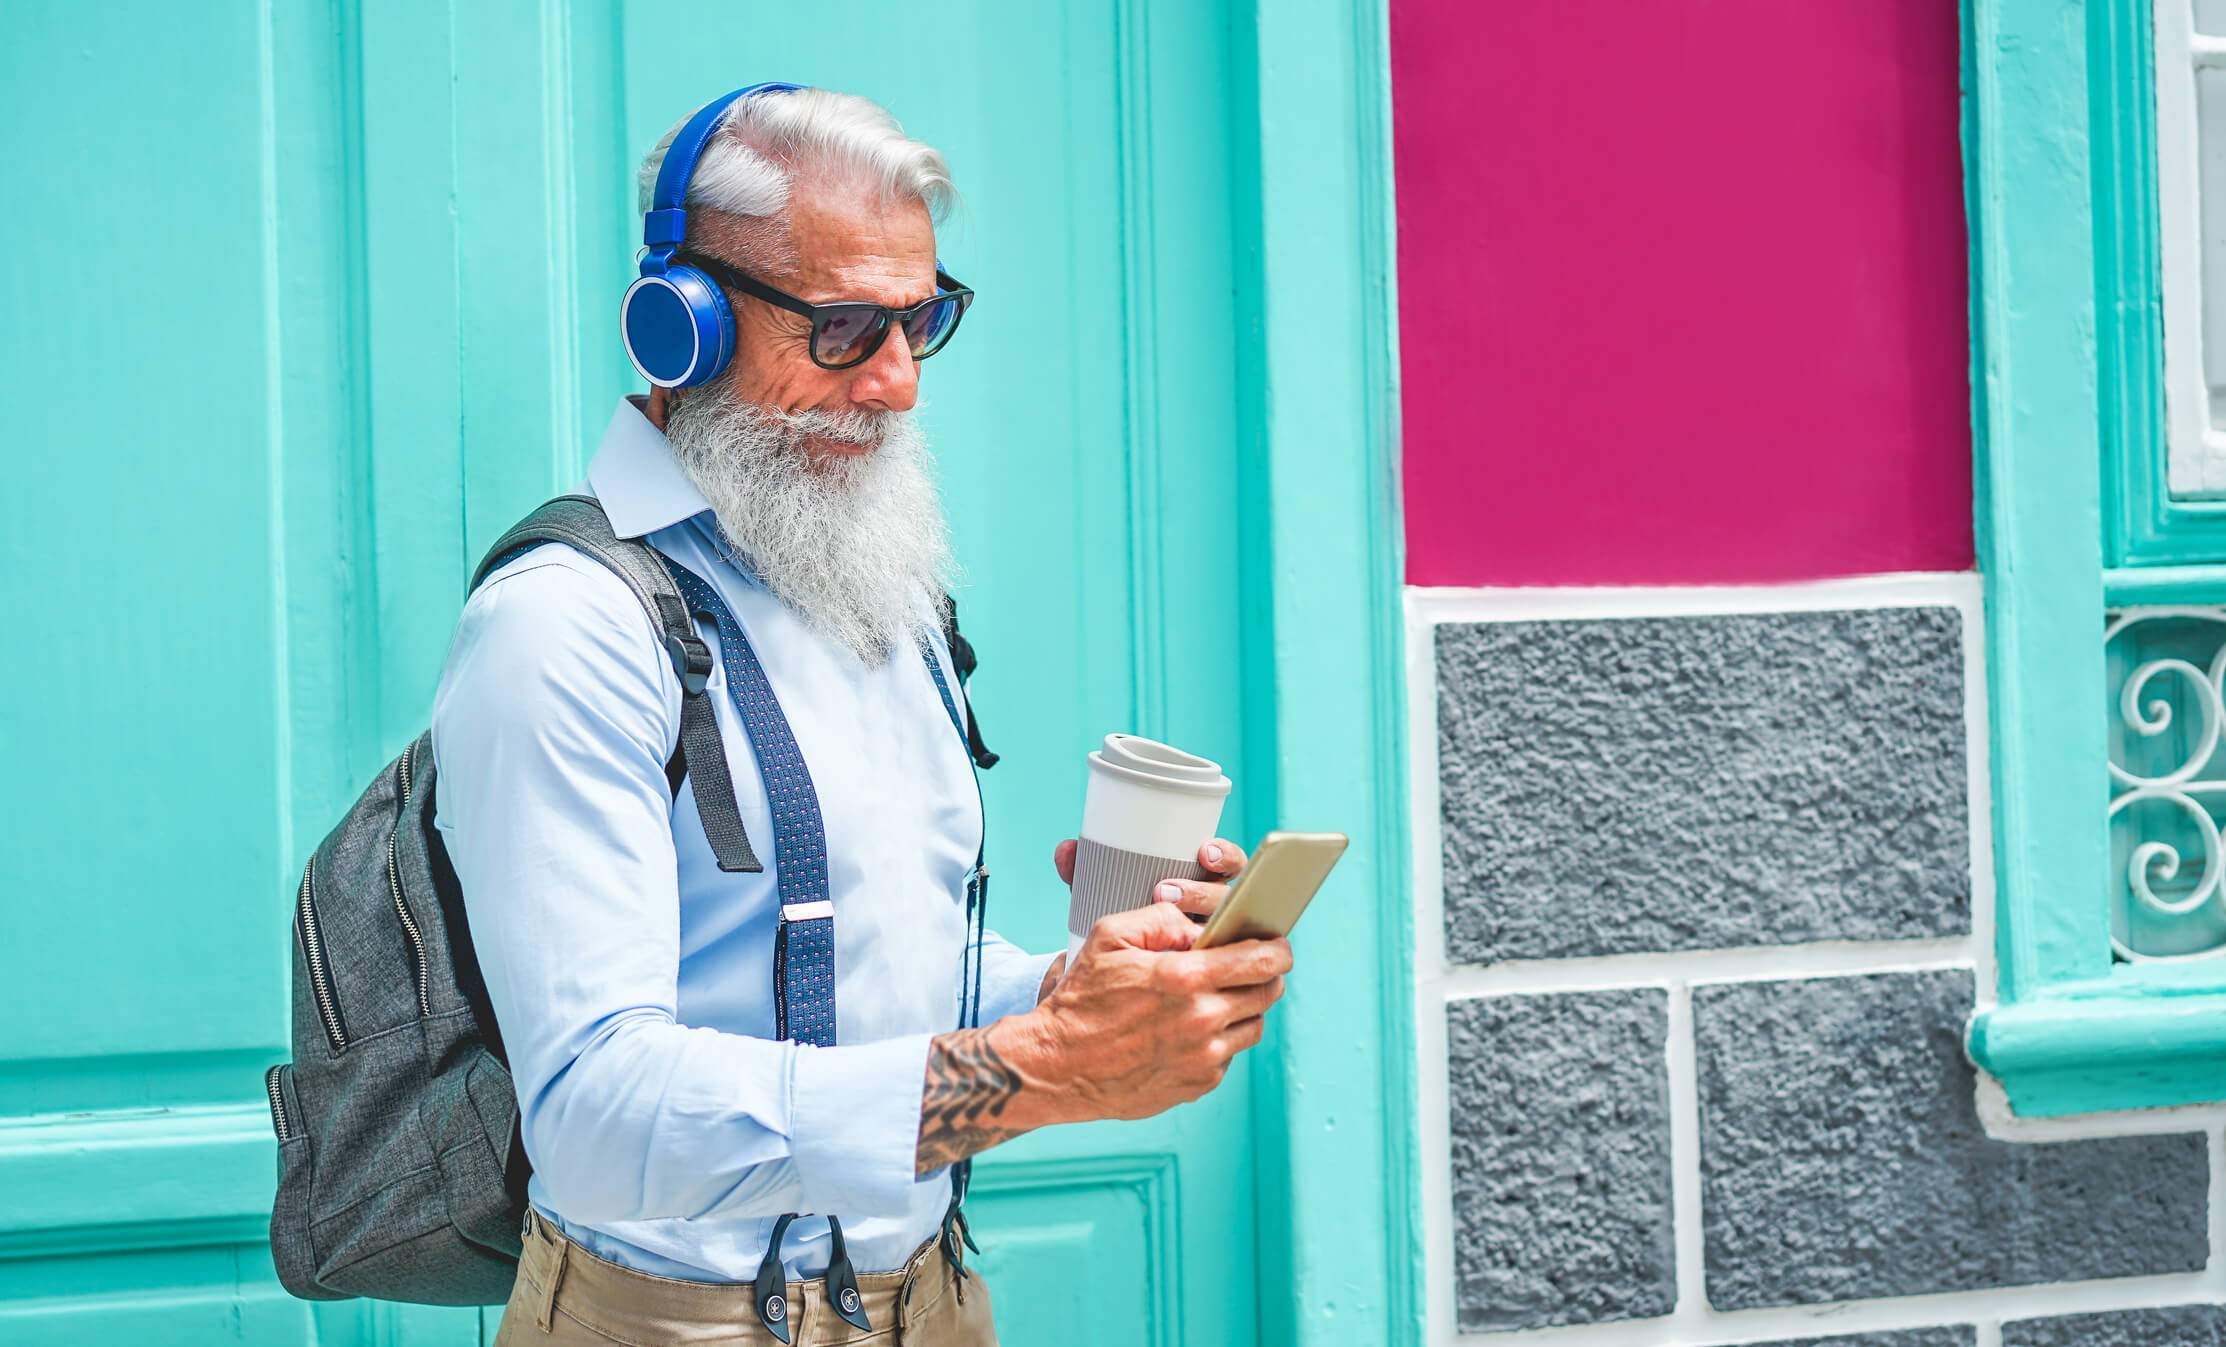 An image of an older man using his phone and wireless headphones.